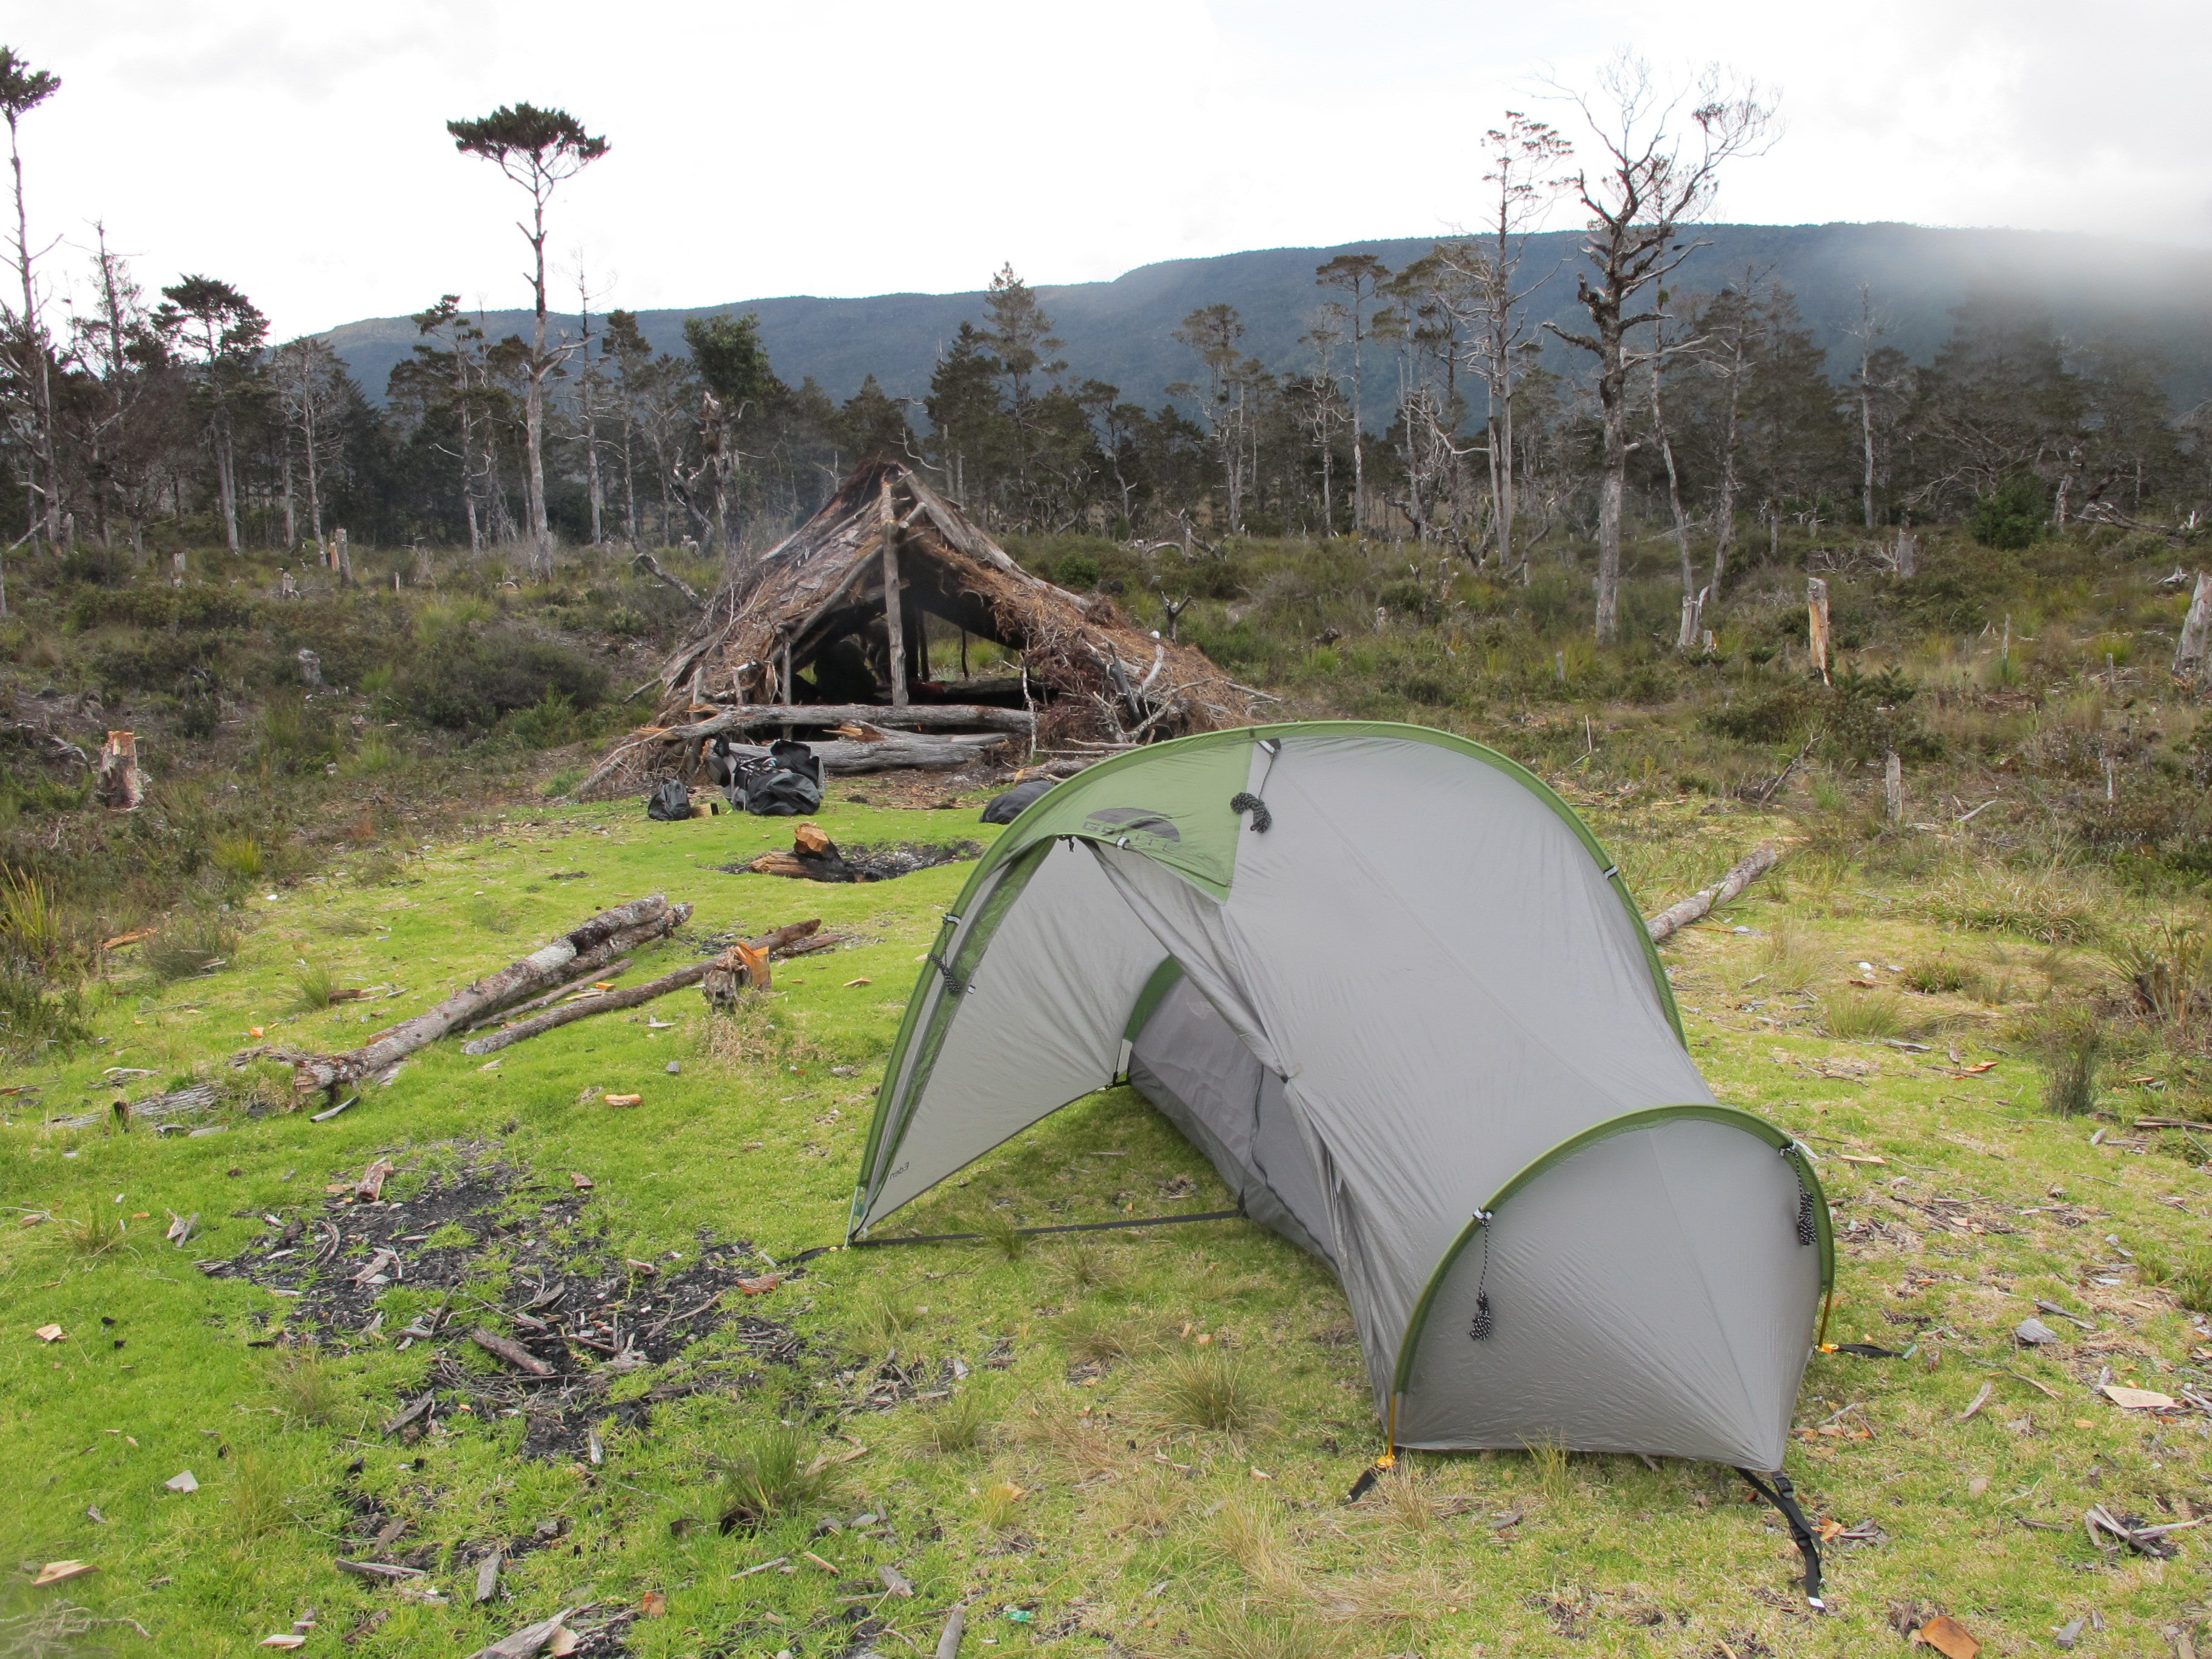 28-nov-2010-my-tent-pitched-at-wakikama